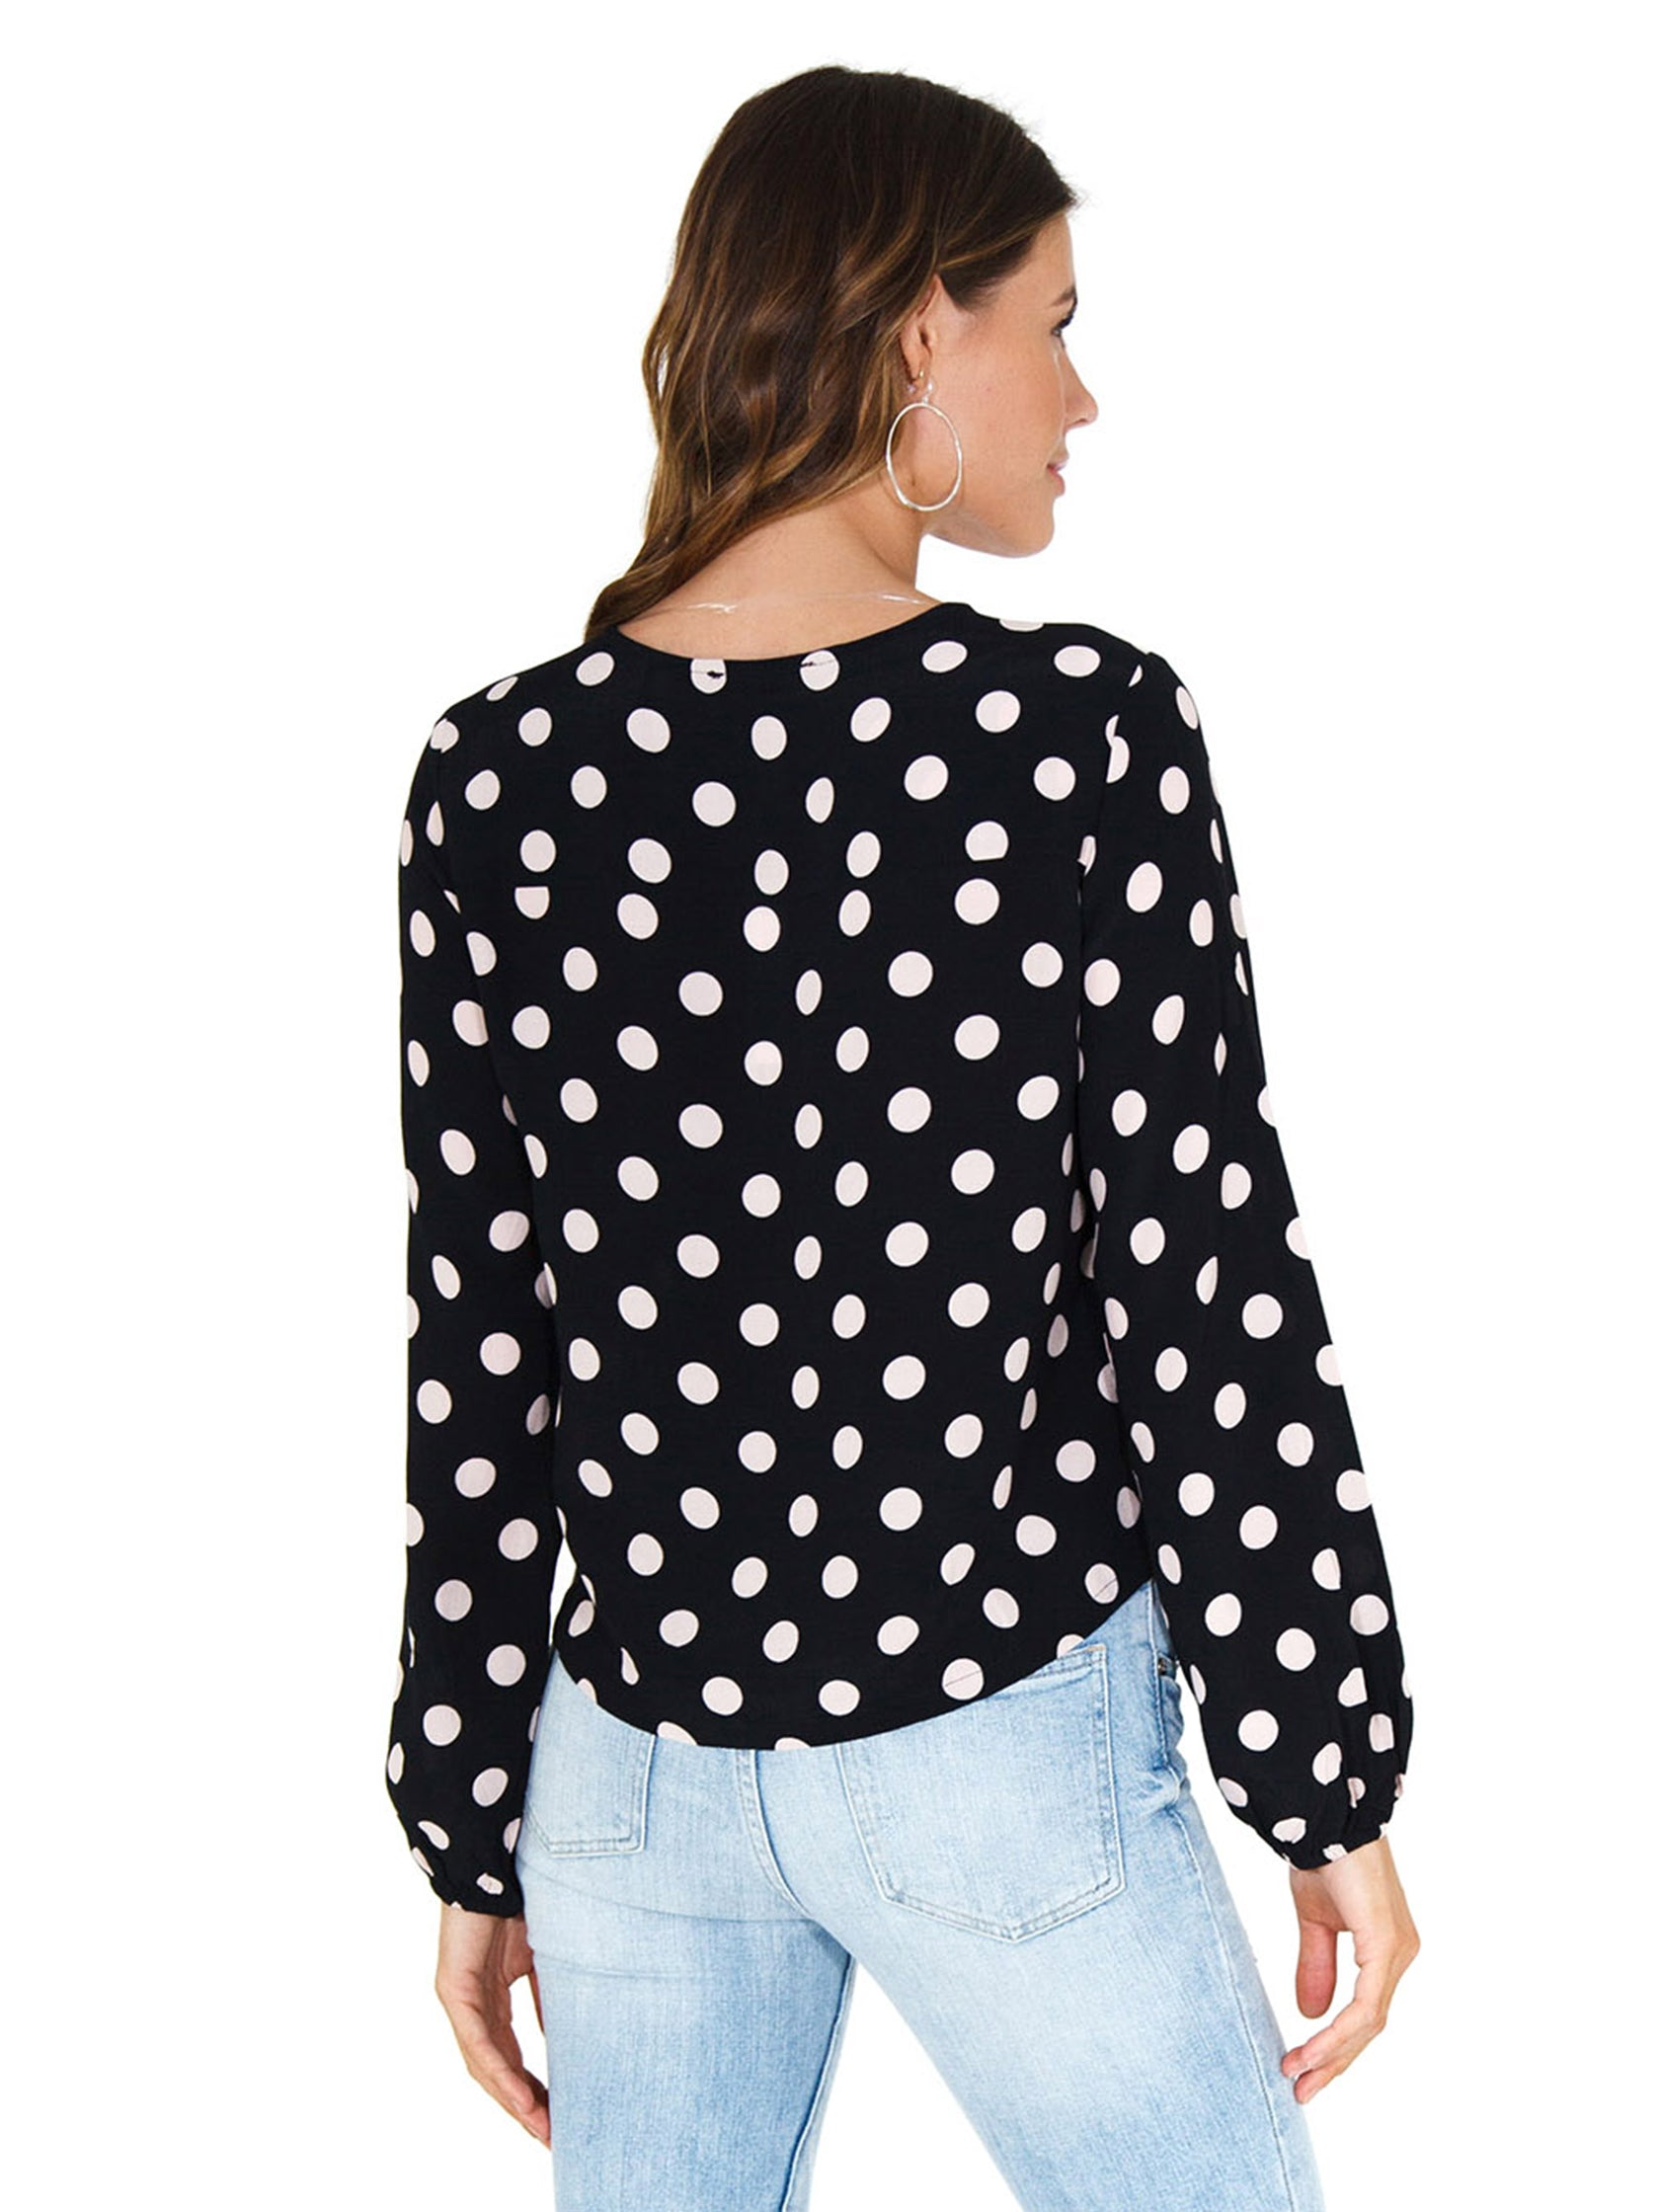 Women outfit in a top rental from SANCTUARY called Cori Blouson Sleeve Blouse